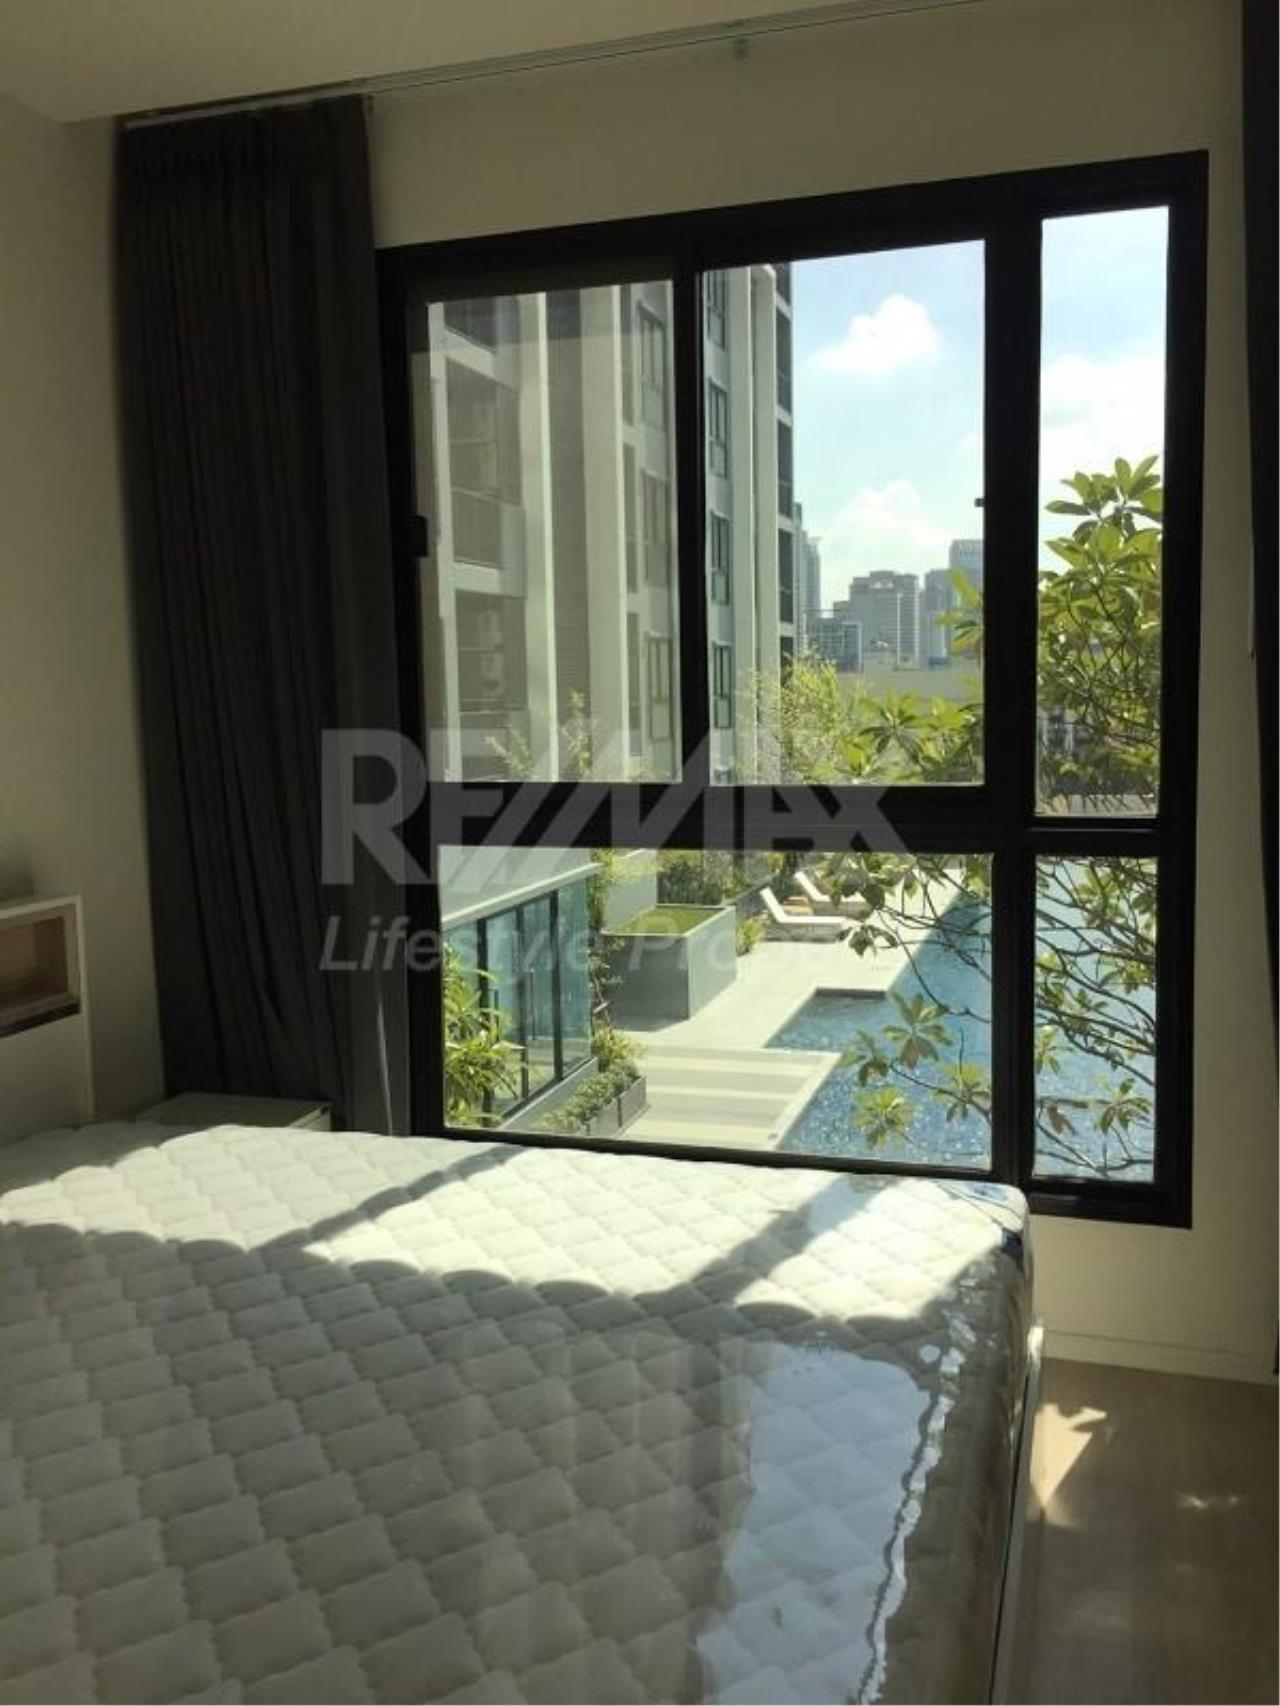 RE/MAX LifeStyle Property Agency's Quinn Condo Ratchada 7